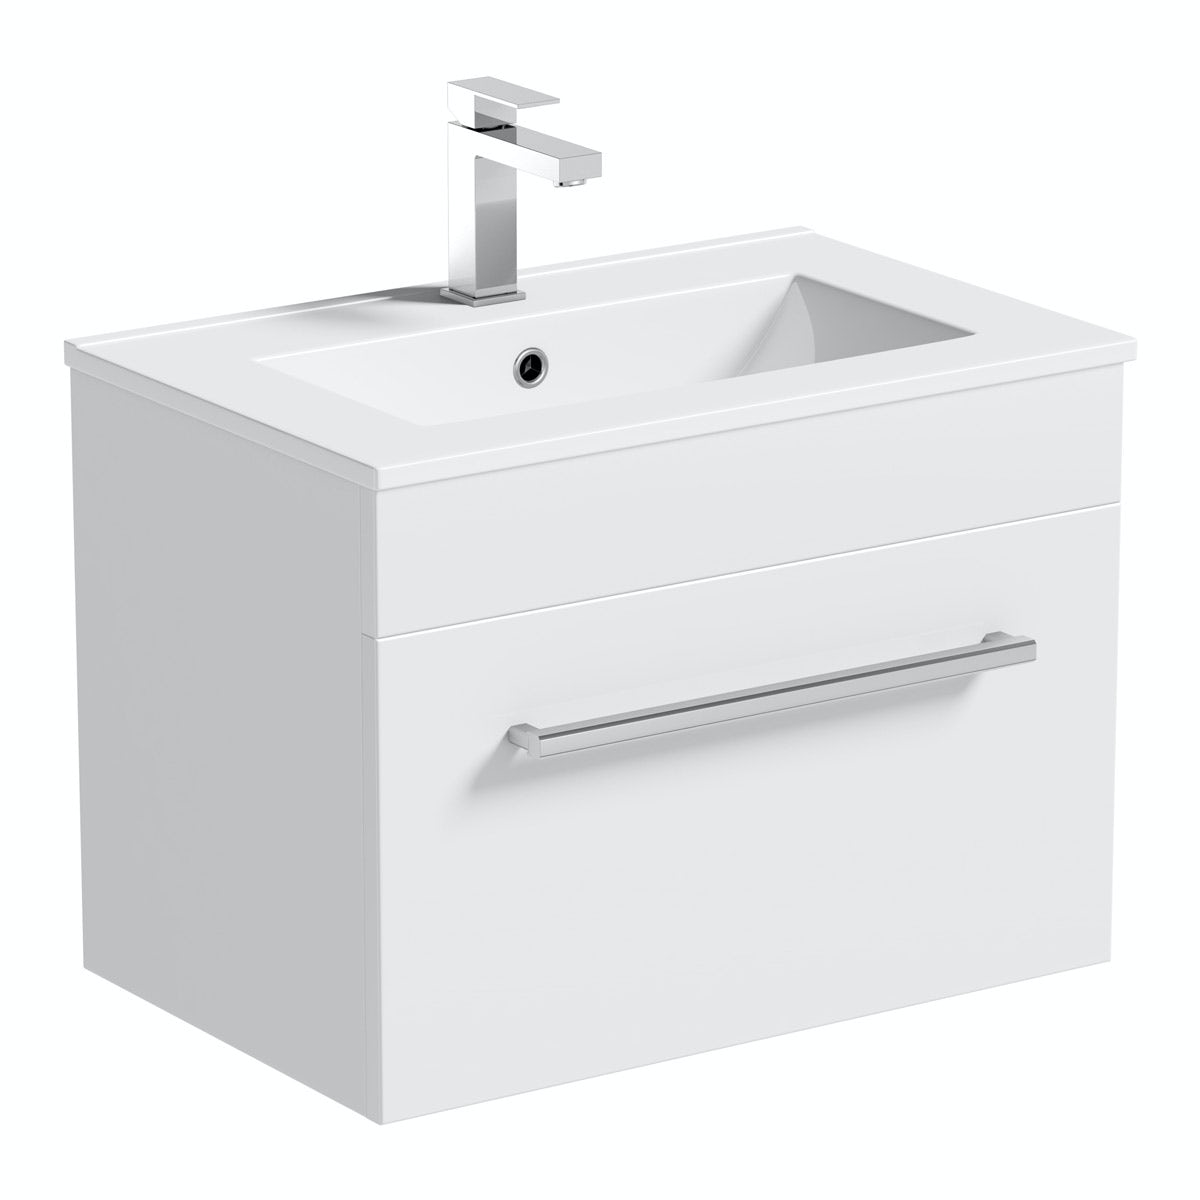 Orchard Derwent white wall hung vanity drawer unit and basin 600mm